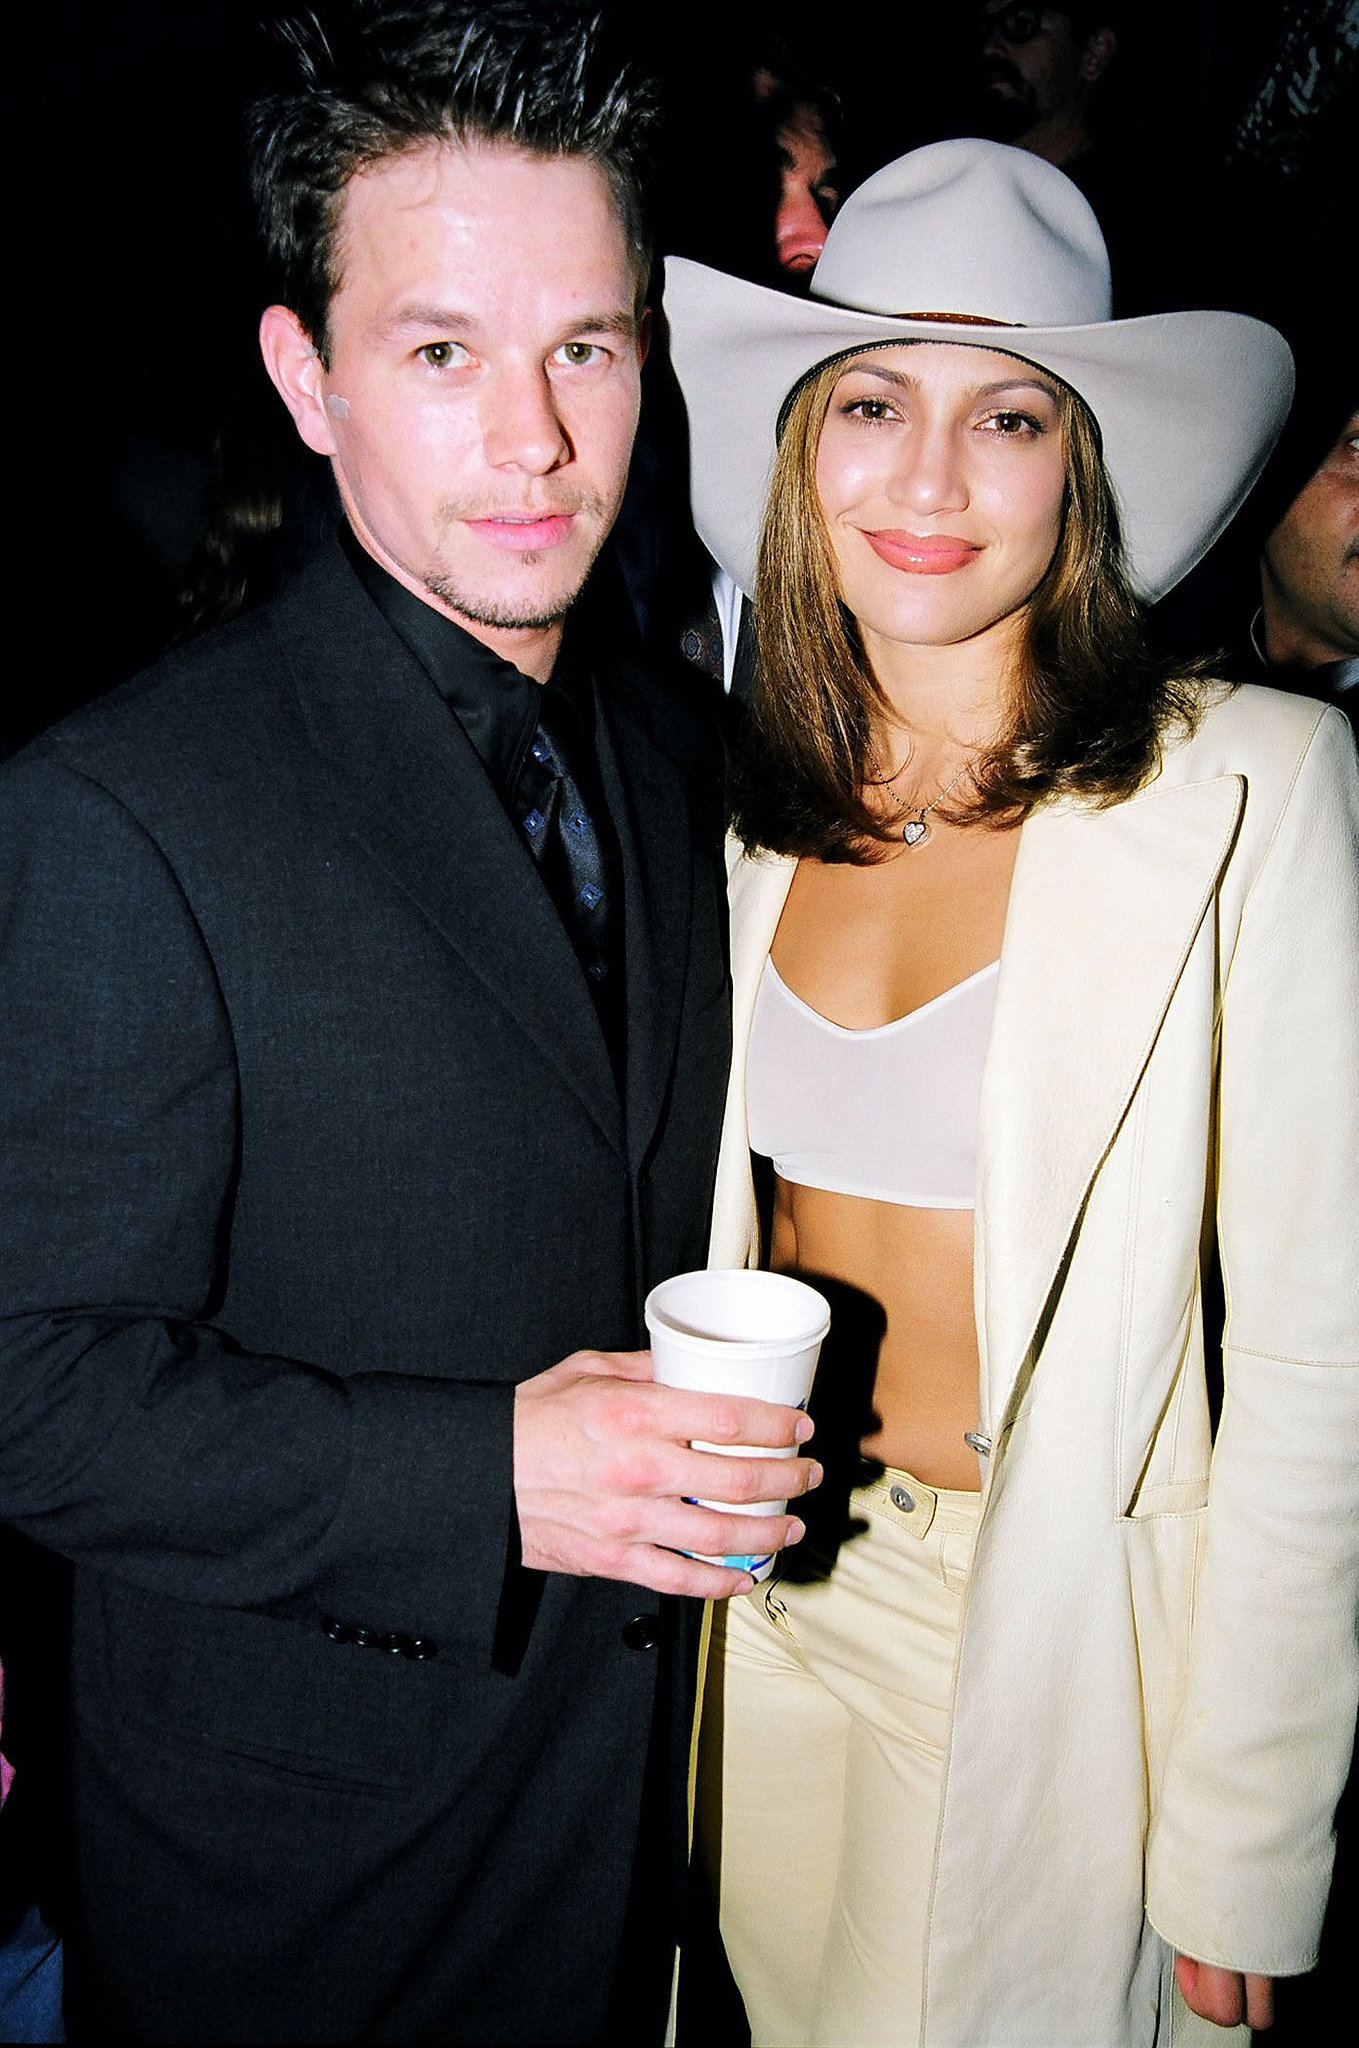 Jennifer Lopez showed off her abs under a blazer while posing with Mark Wahlberg at the 1998 awards.